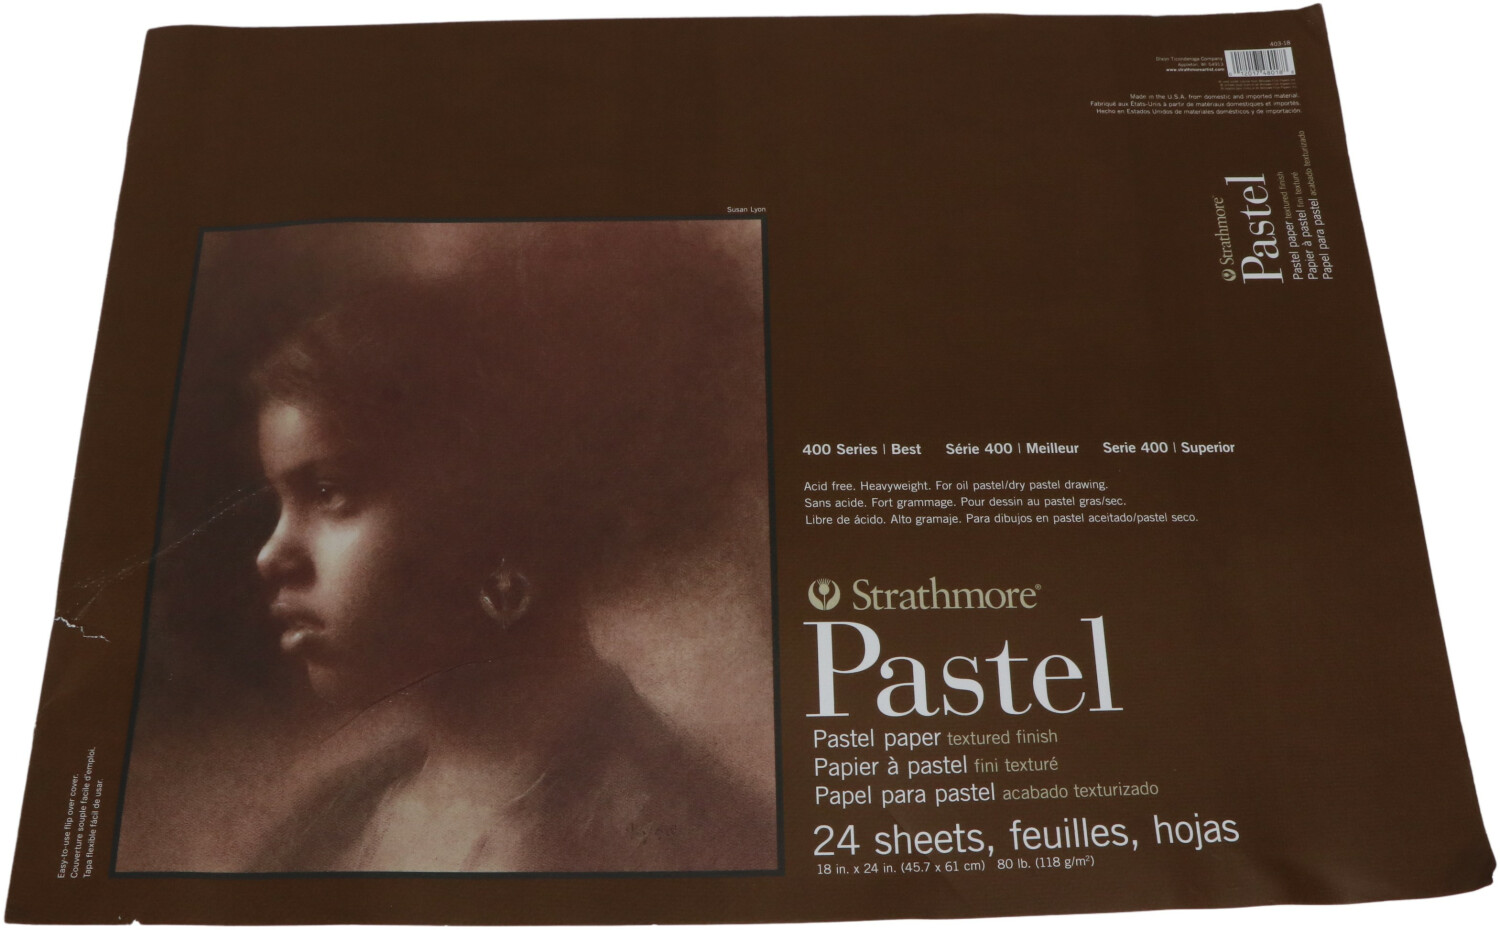 Strathmore 400 Series Pastel Paper, 24 Sheets Paper 403-18